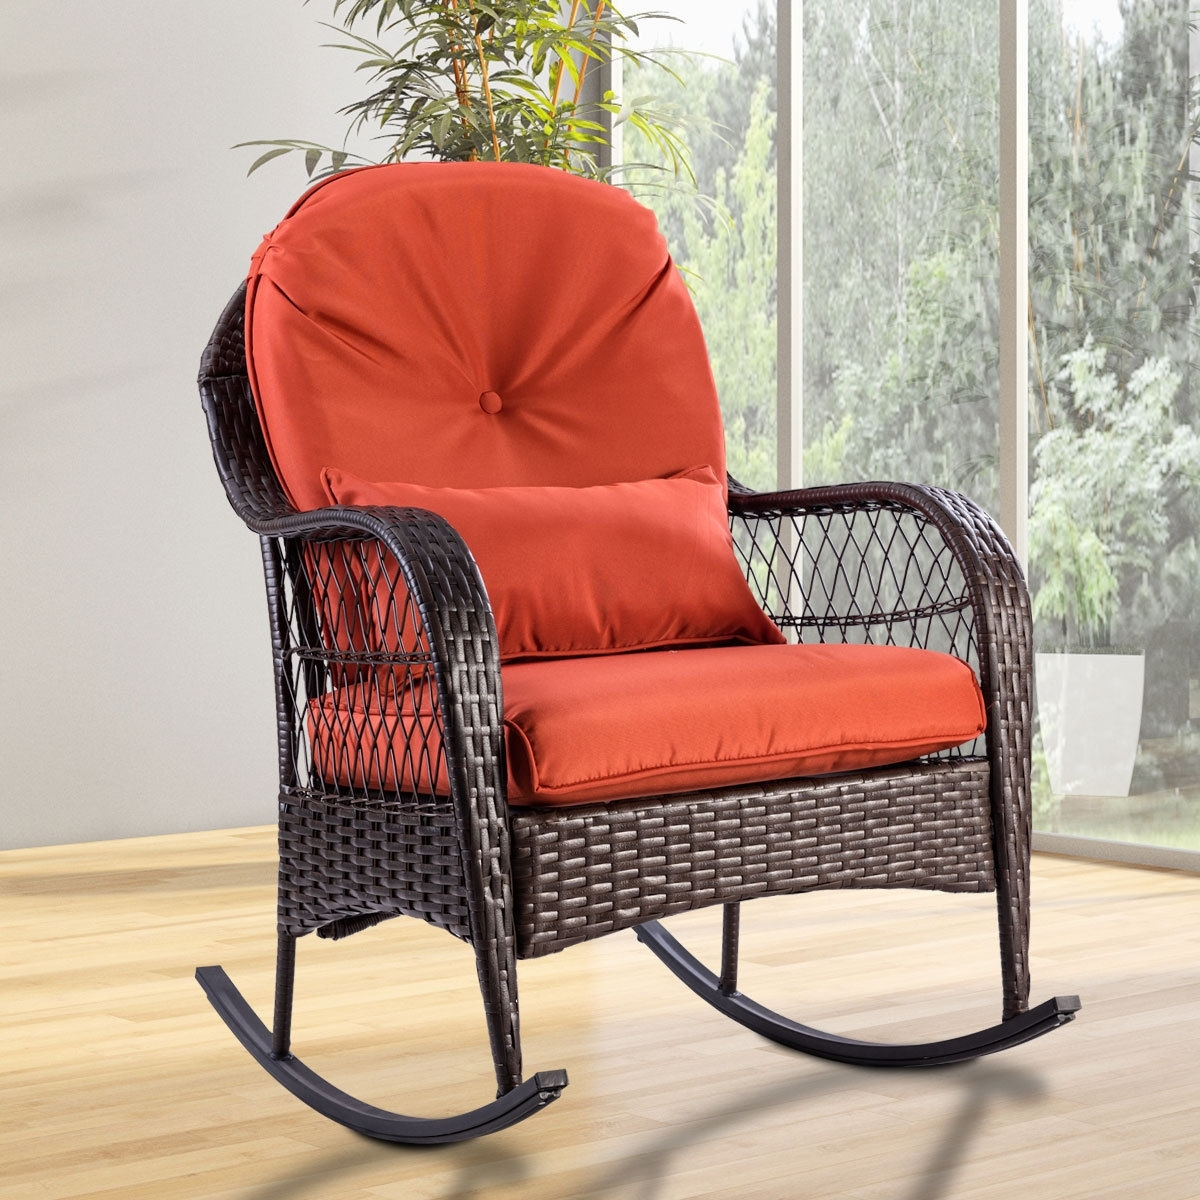 Giantex Patio Rattan Wicker Rocking Chair Modern Porch Deck Rocker With Regard To Padded Patio Rocking Chairs (#10 of 15)